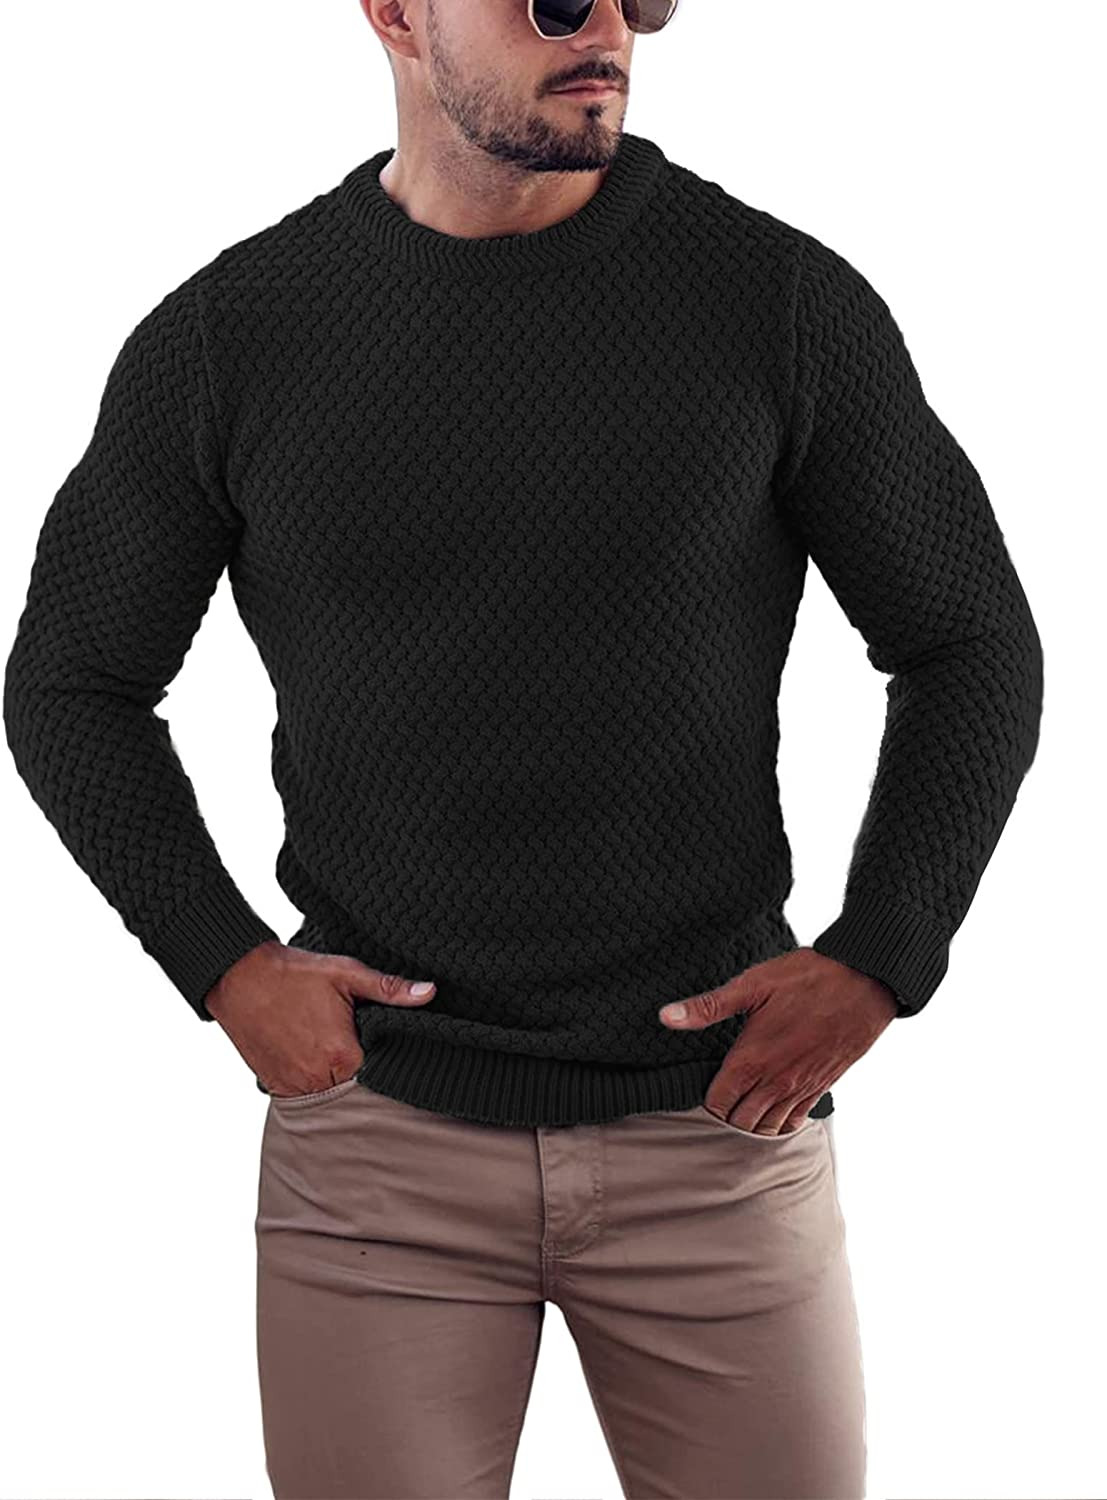 COOFANDY Mens Pullover Knitted Sweater Crewneck Stylish Knitwear Casual Slim Fit Weave Knit Jumper